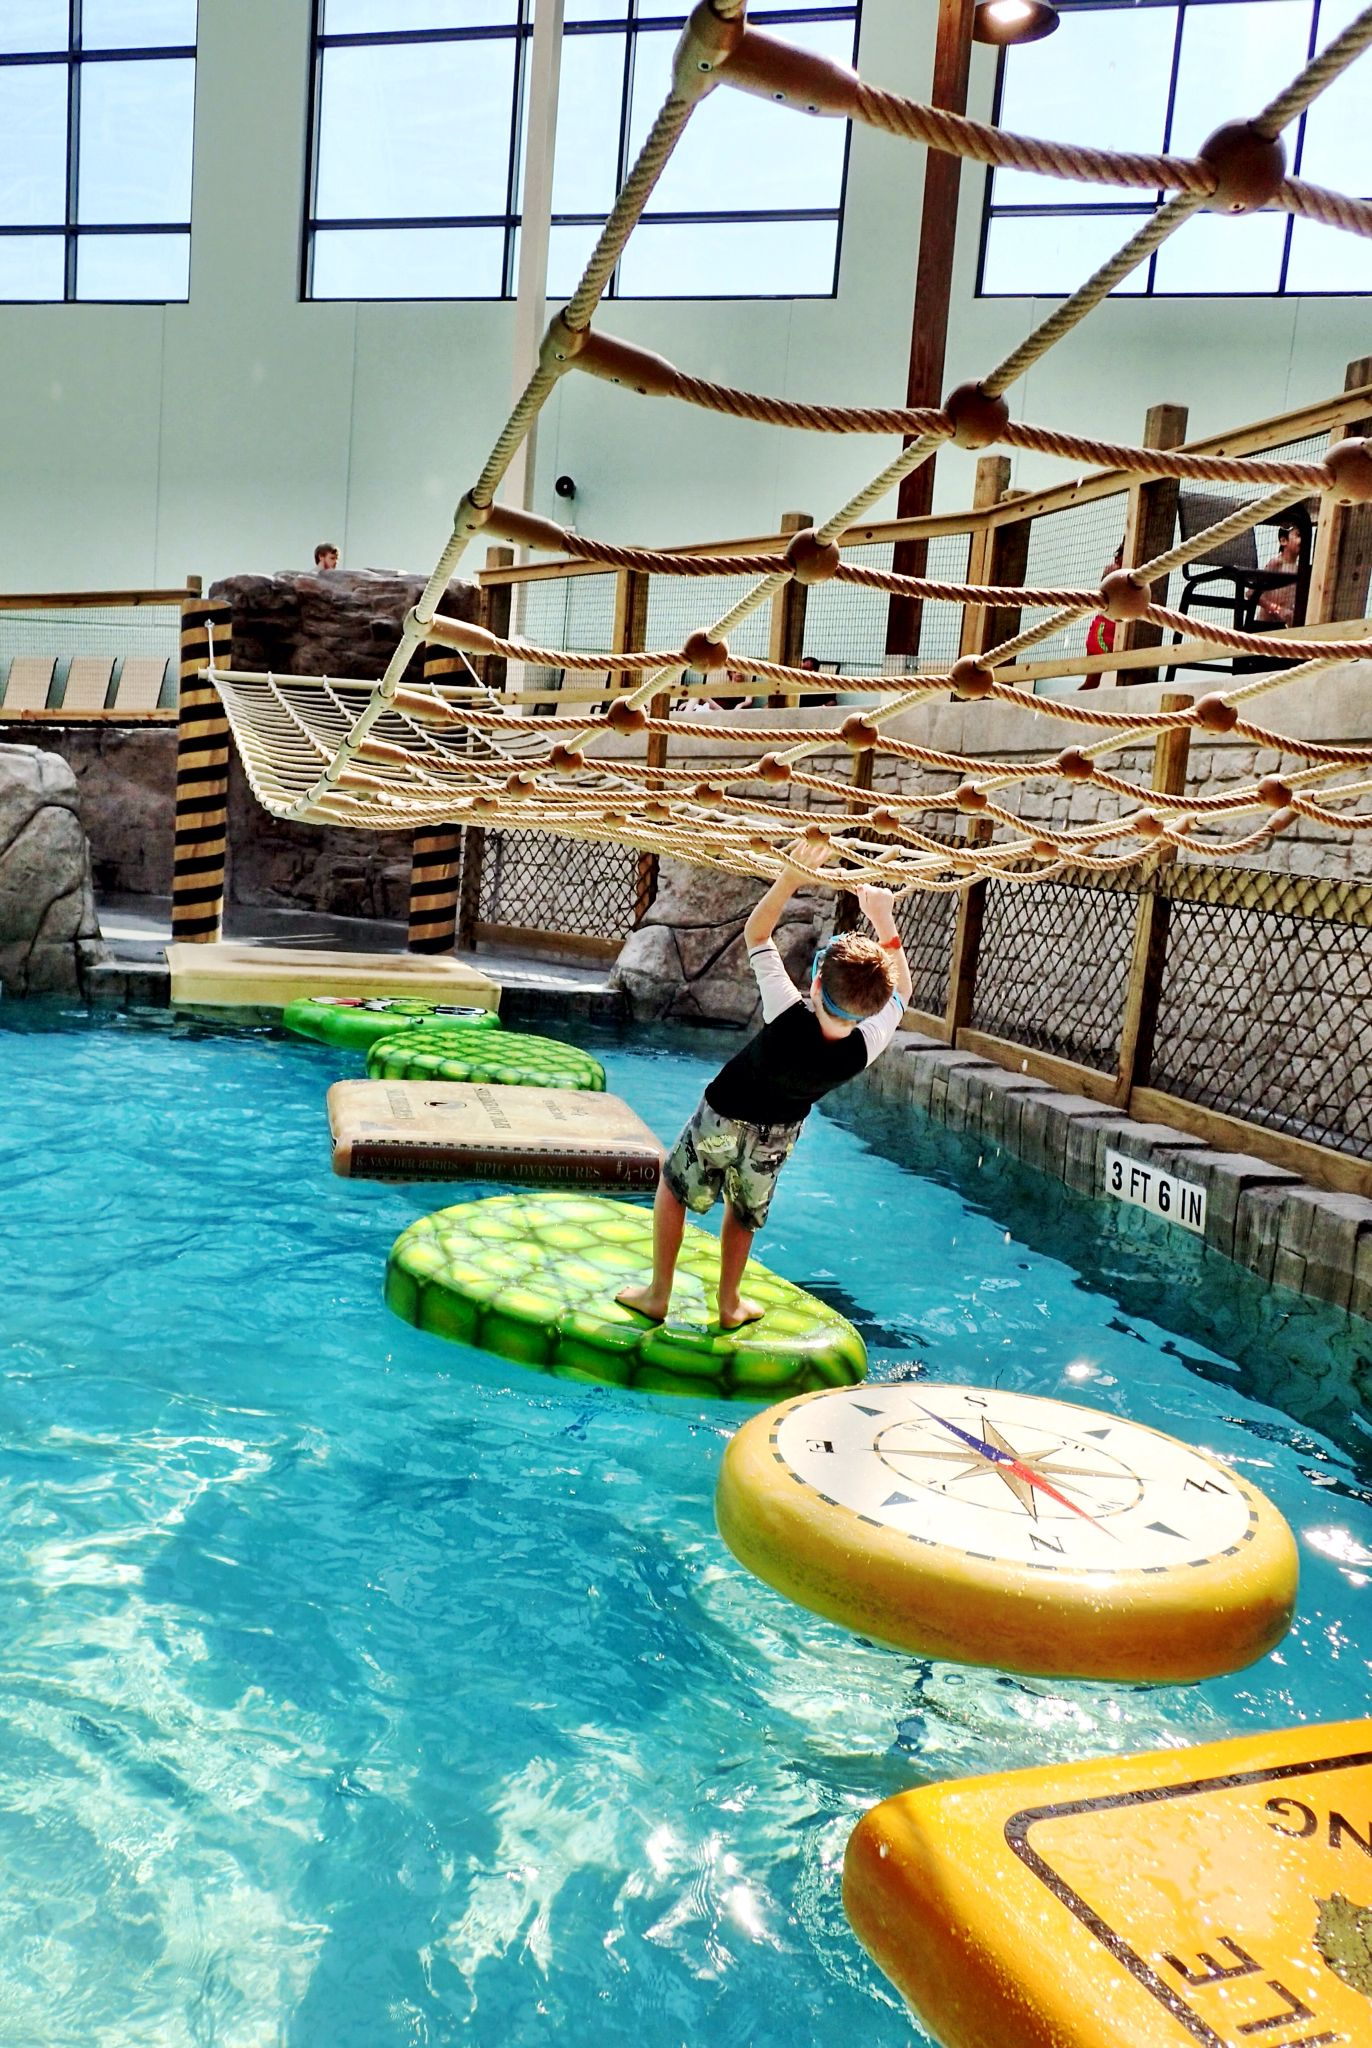 Indoor Water Park Resorts Are Sure To Bring The Fun Weeble And Wobble But Don T Fall In At Croc Water Parks In Pa Indoor Water Park Resorts Indoor Waterpark